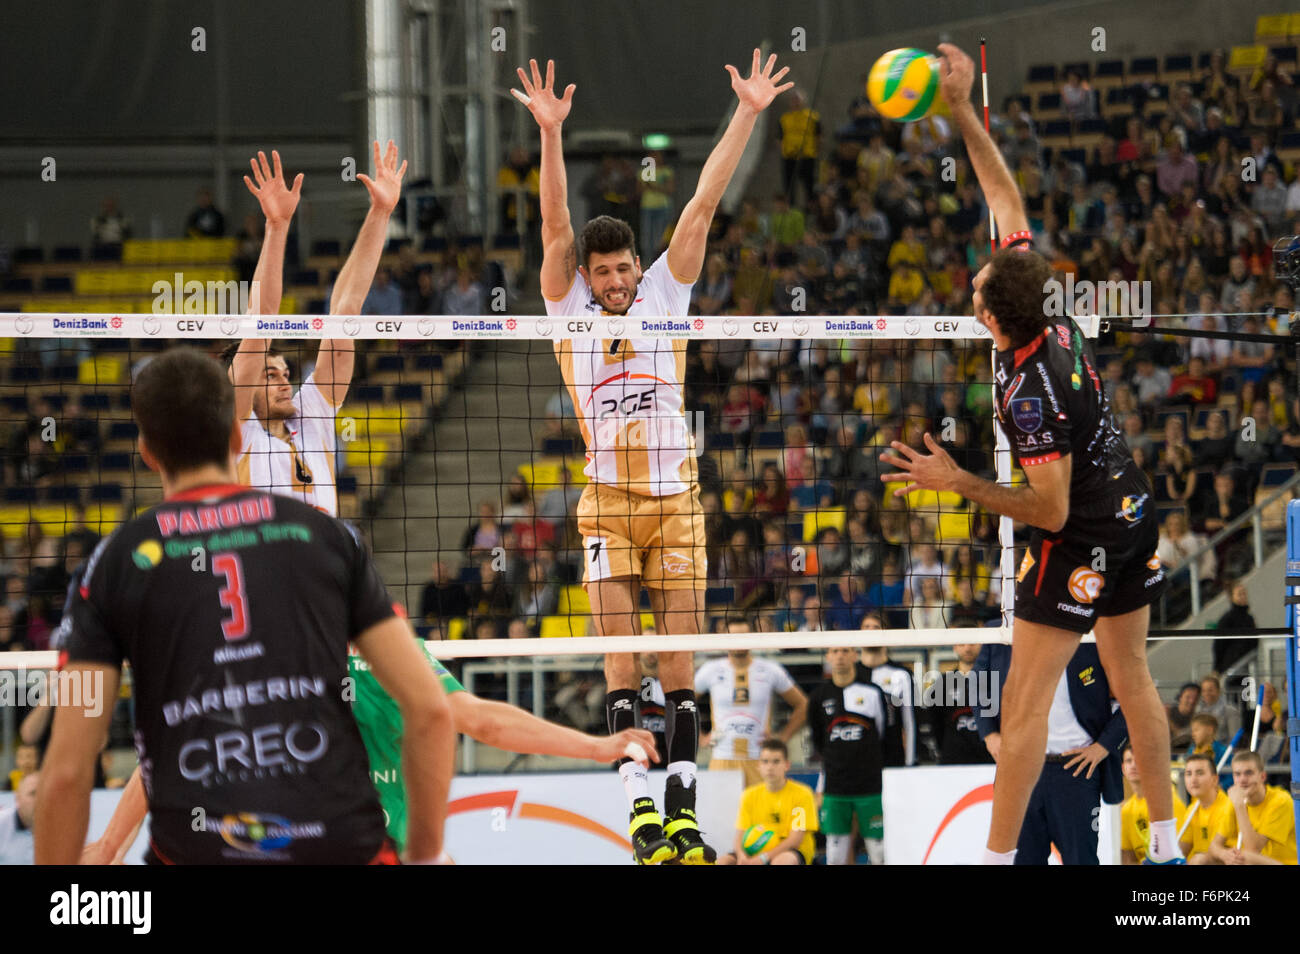 Lodz, Poland. 18th November, 2015. Facundo Conte of PGE Skra Belchatów blocks during the game against Cucine Lube Stock Photo